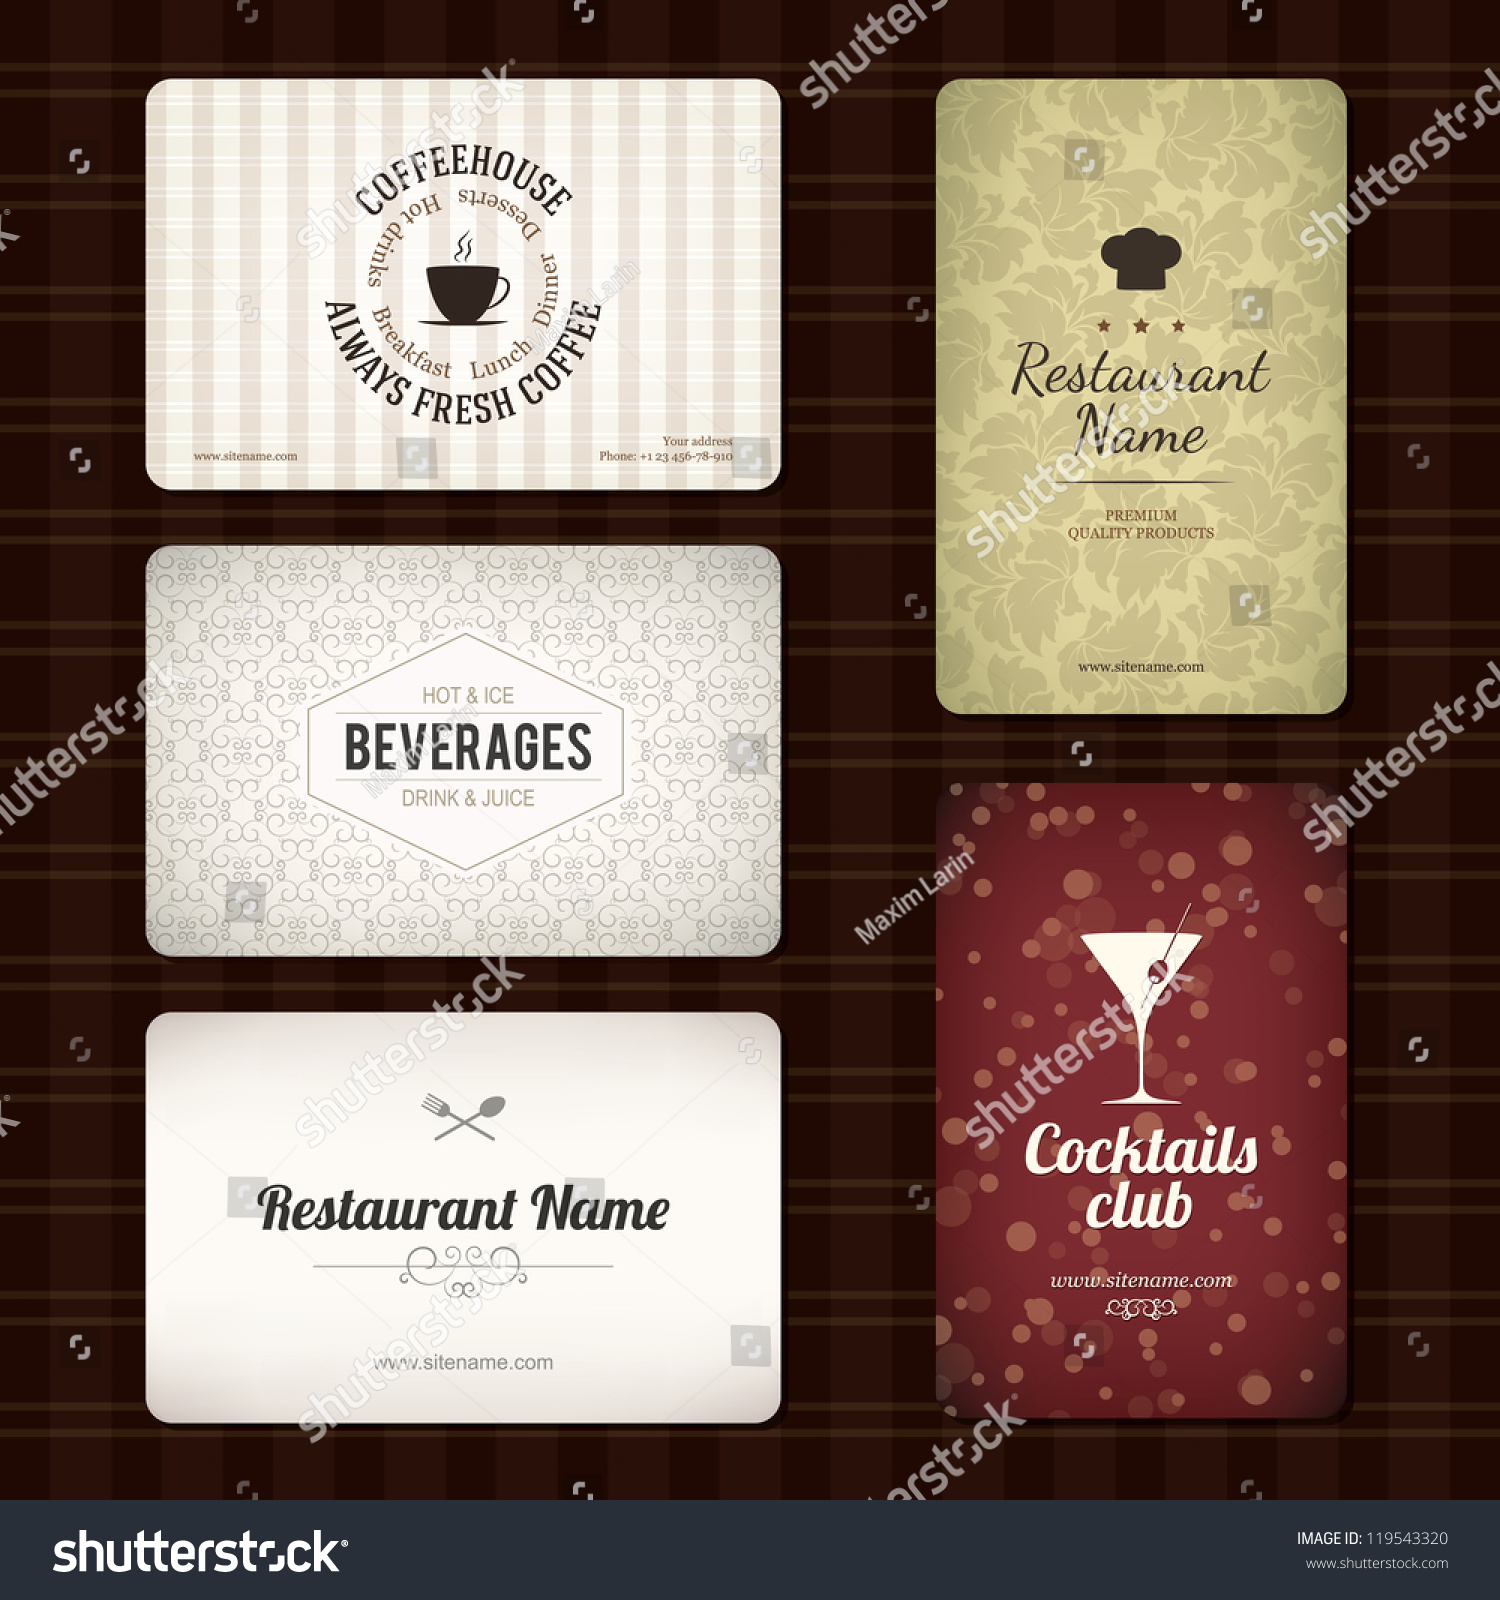 Perfect cafe business cards sketch business card ideas etadamfo set 5 detailed business cards cafe stock vector 119543320 shutterstock reheart Image collections